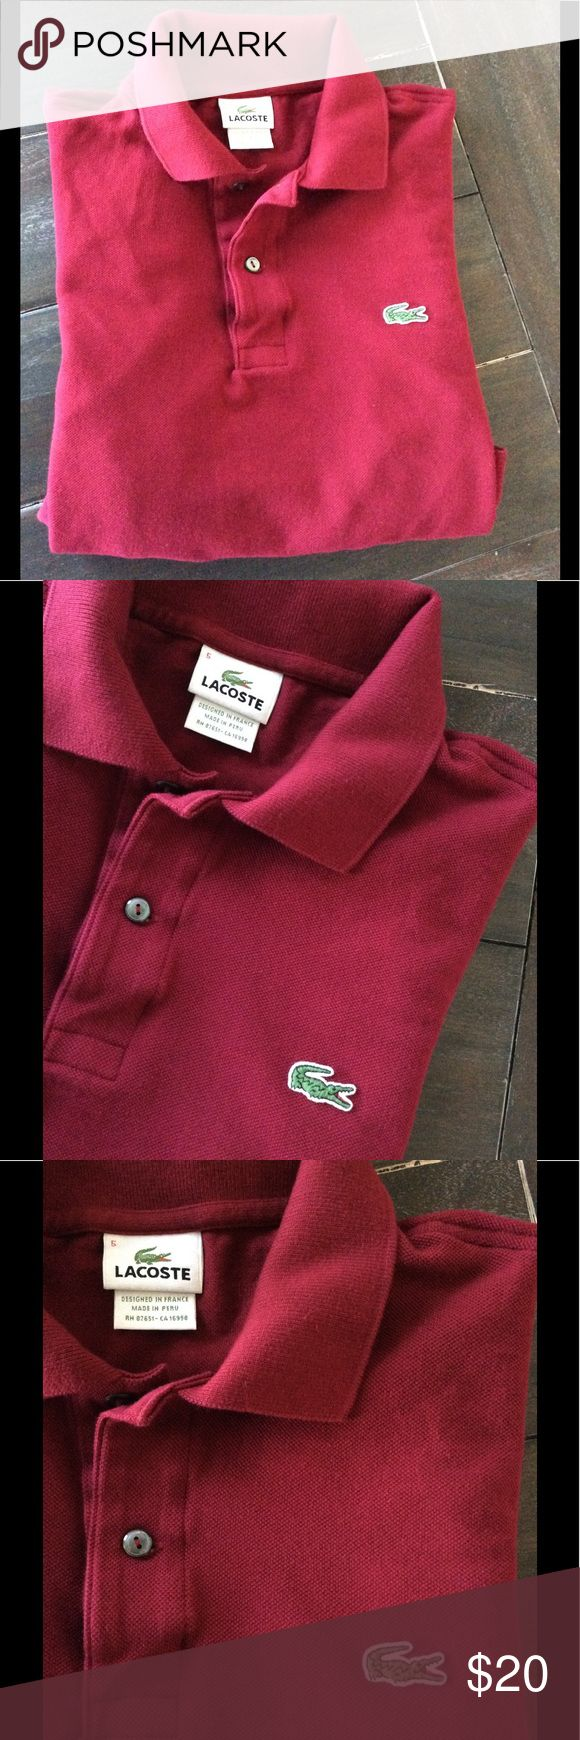 Lacoste Polo Shirt size 5 Authentic Lacoste polo shirt. In great condition, can pass as new! Designed in France and made in Peru. Great material. Look stylish while relaxing 😎. Bundle for extra discount! Color: Raspberry Sorbet Lacoste Shirts Polos